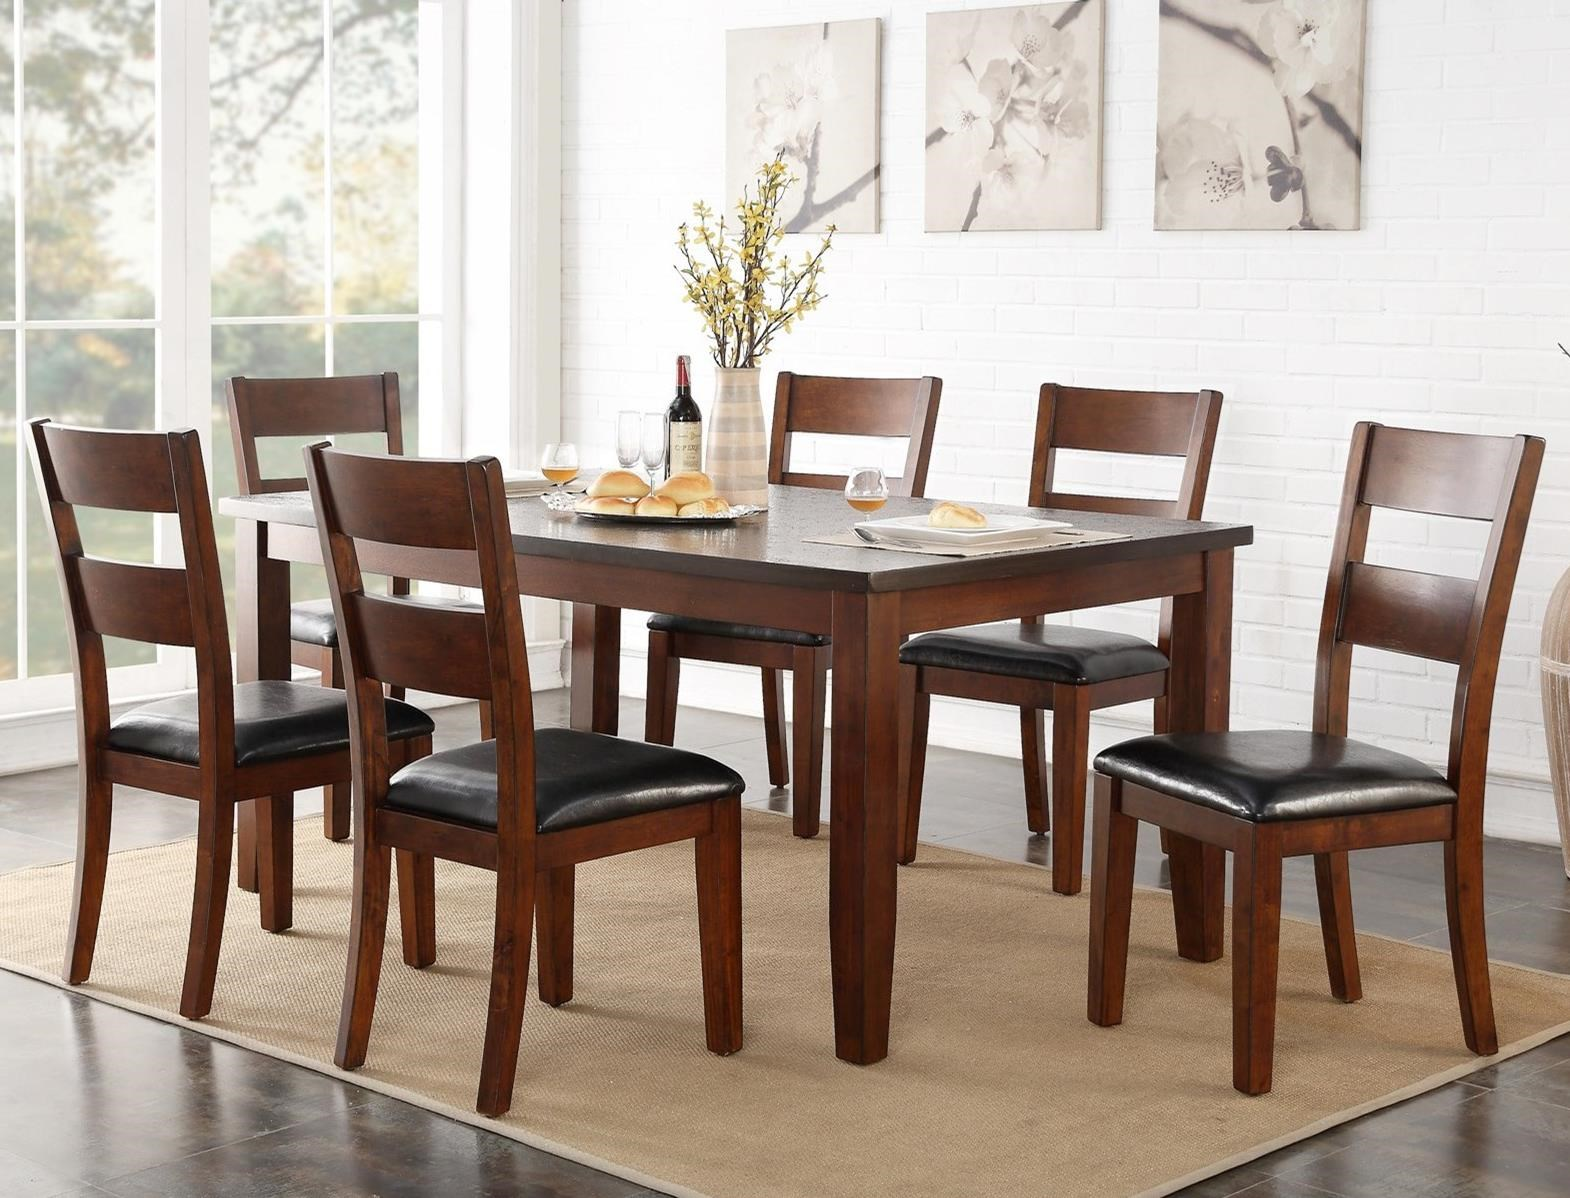 Legends Furniture Rockport 7 Piece Table & Chair Set - Item Number: ZRPT-8060+6x61